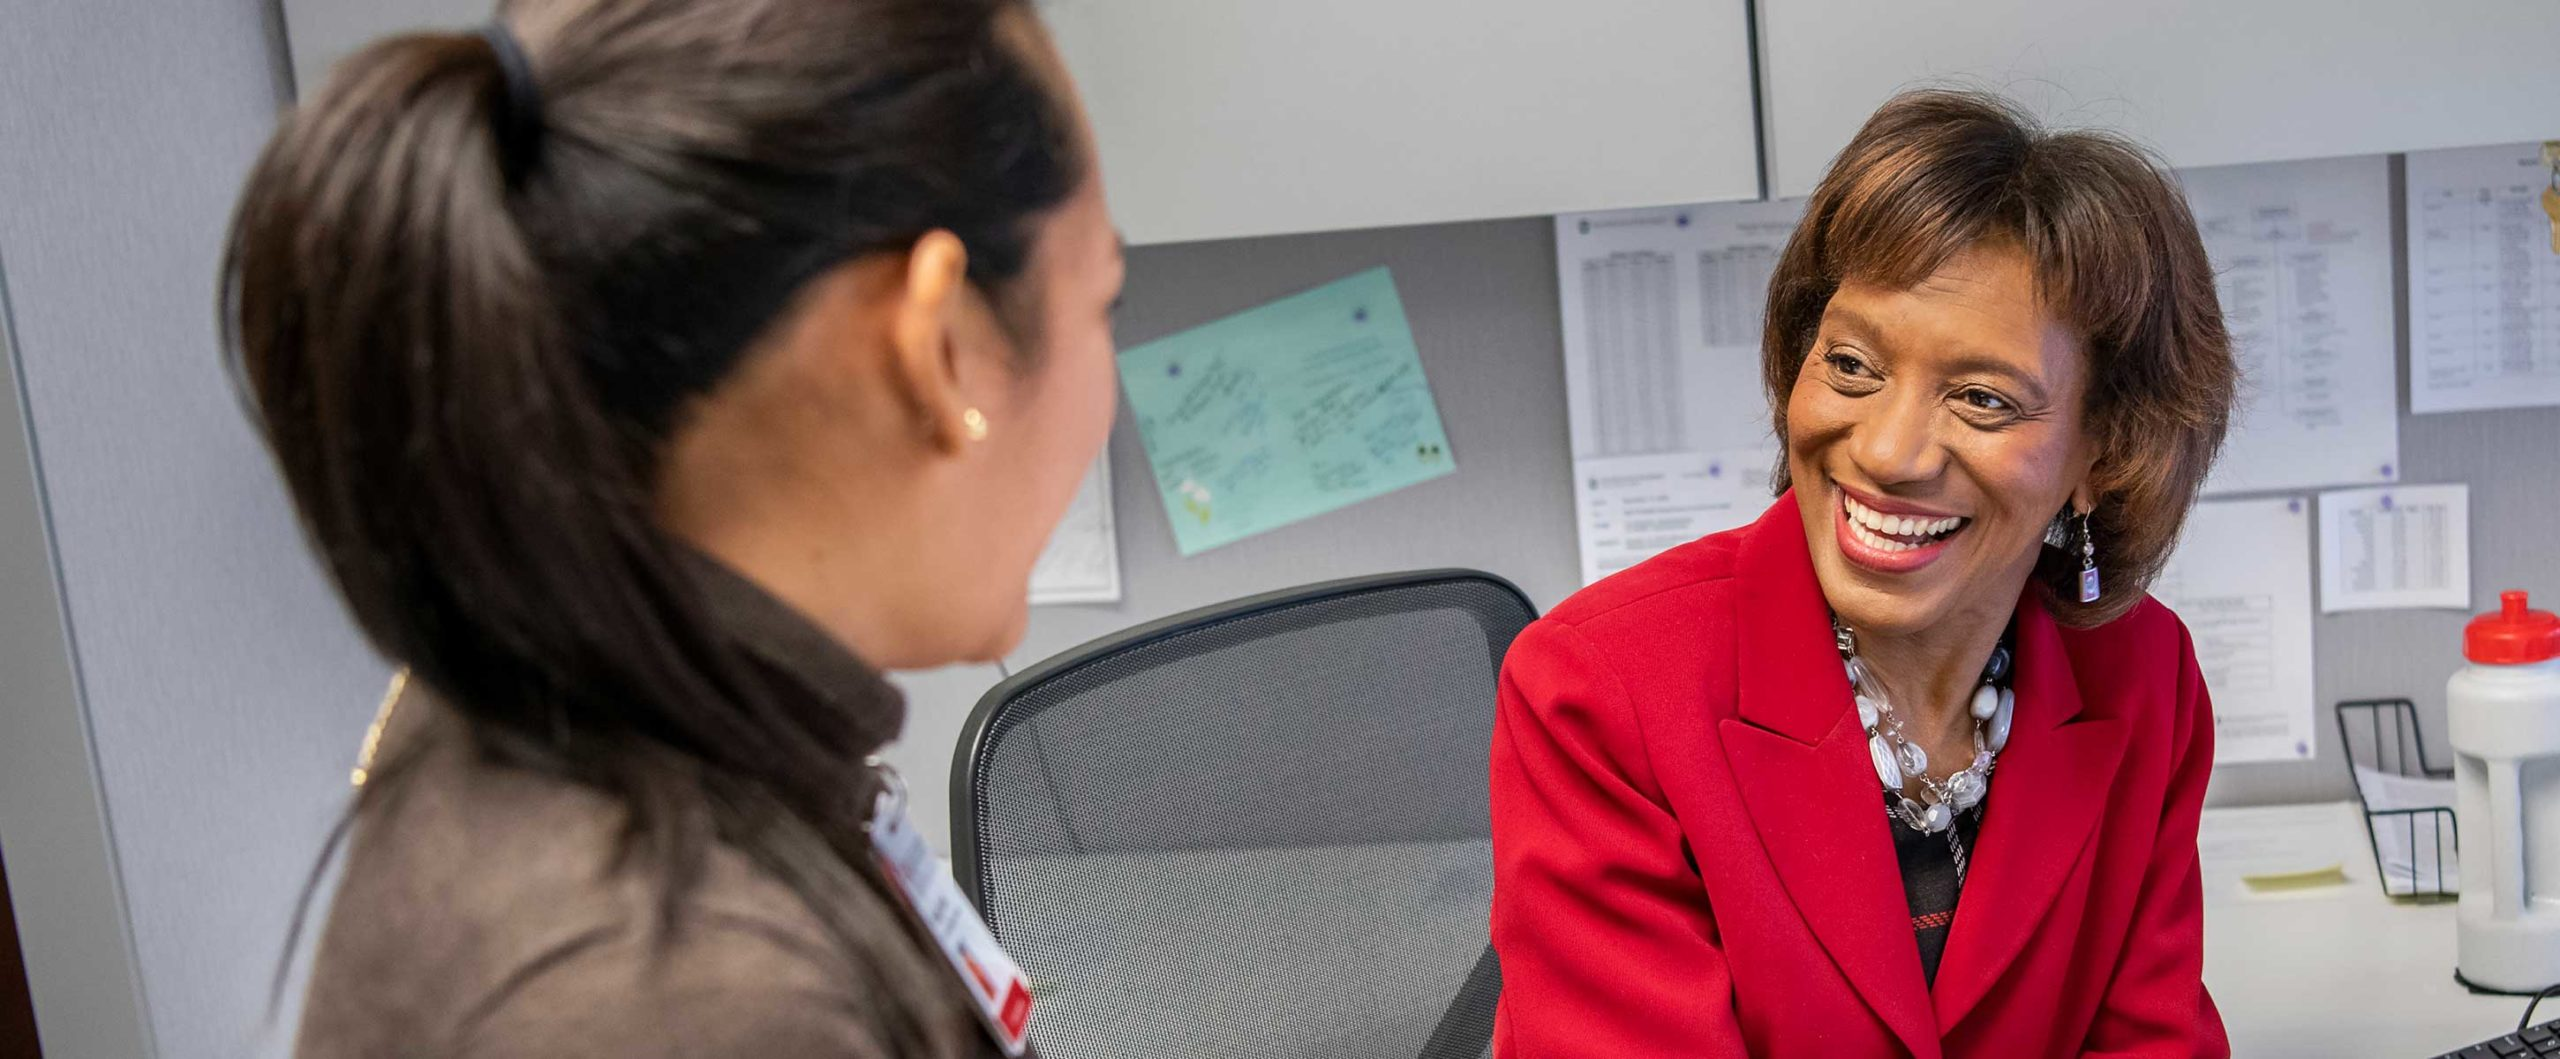 female professor talking to a female student in her office